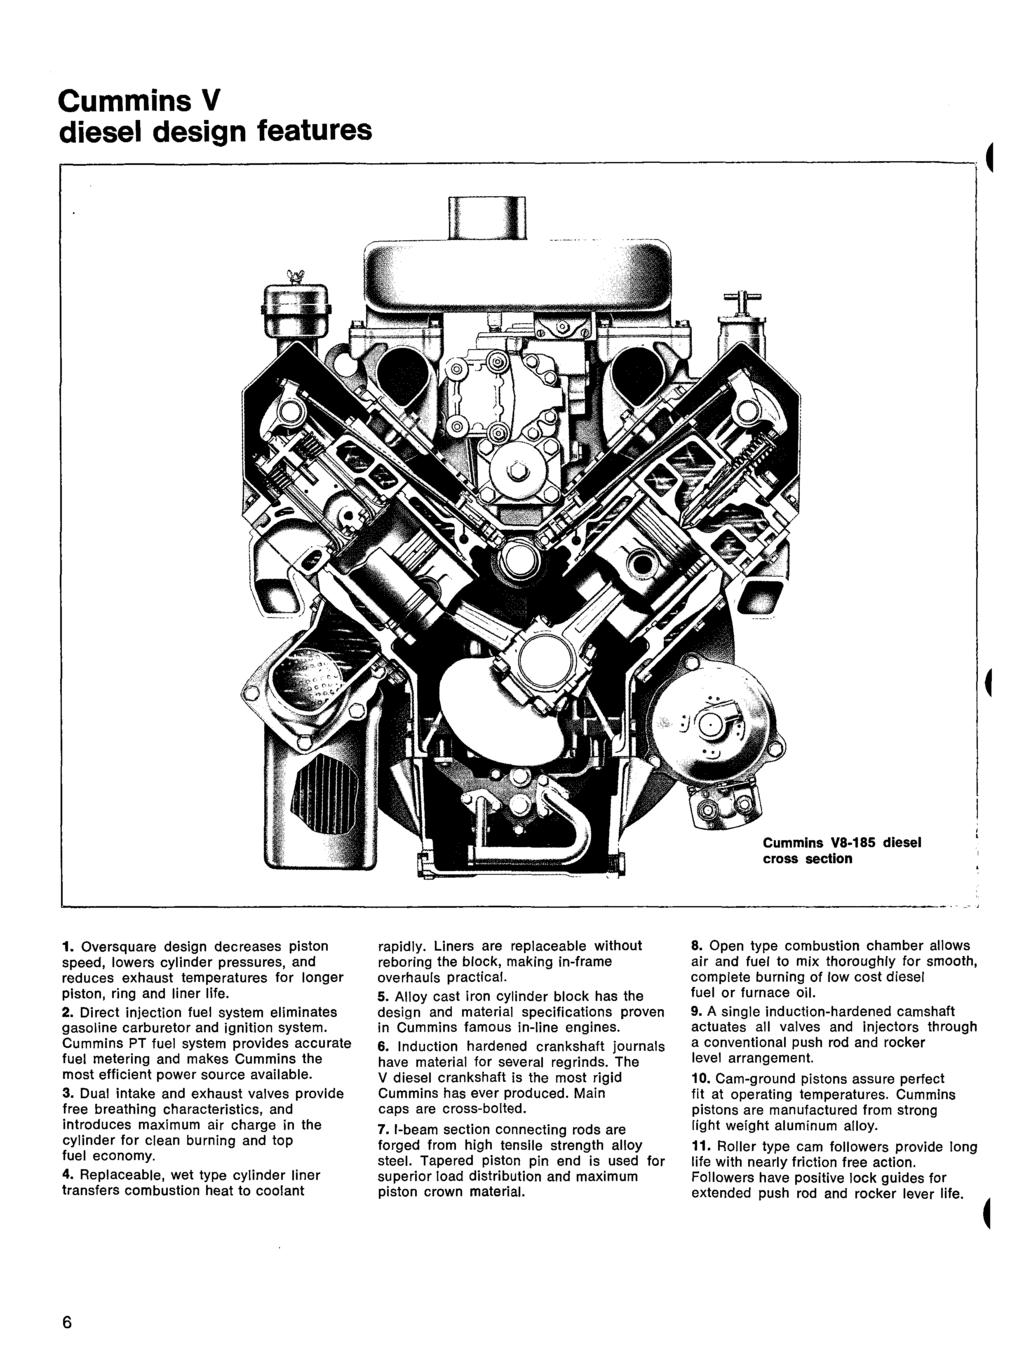 The M Nufacture Ofsel Engines Presented Ly Cueimins Engine Coapany